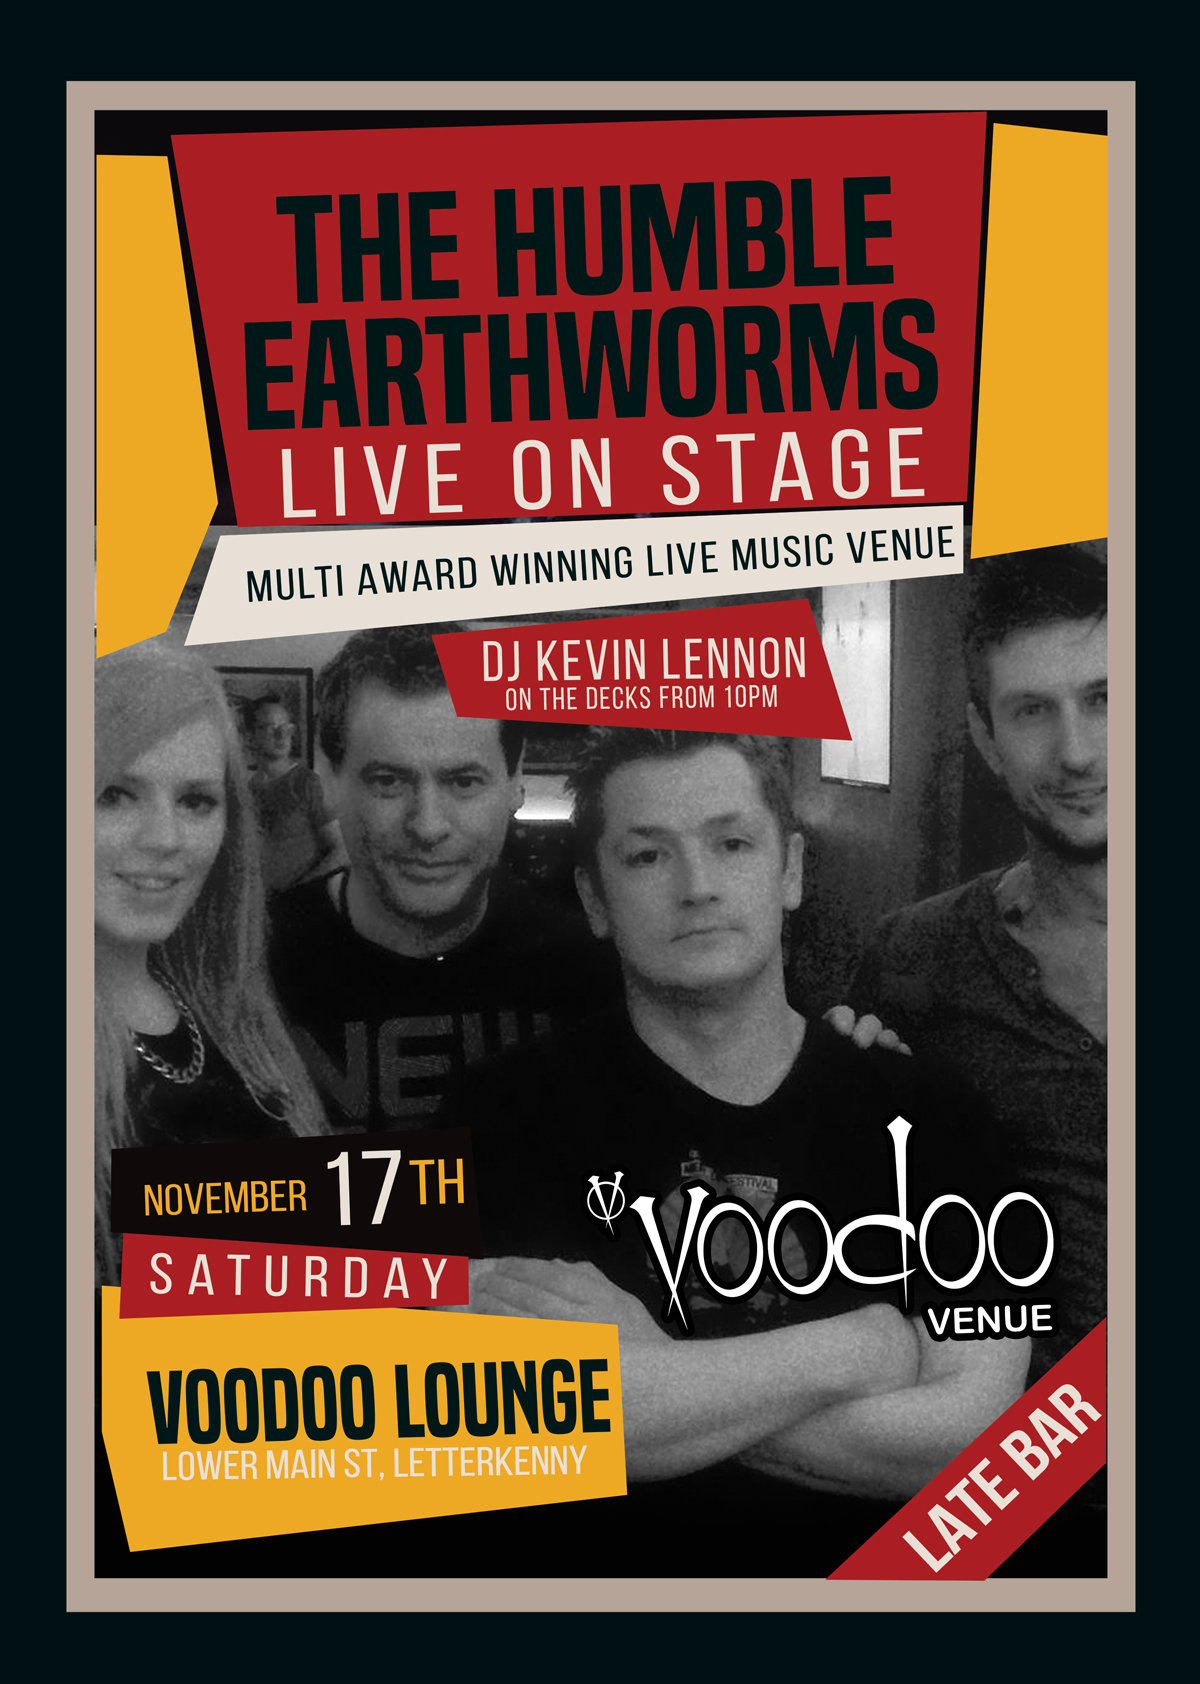 VOODOO-VENUE---humble-earthworms-sat-nov-17-2018.jpg